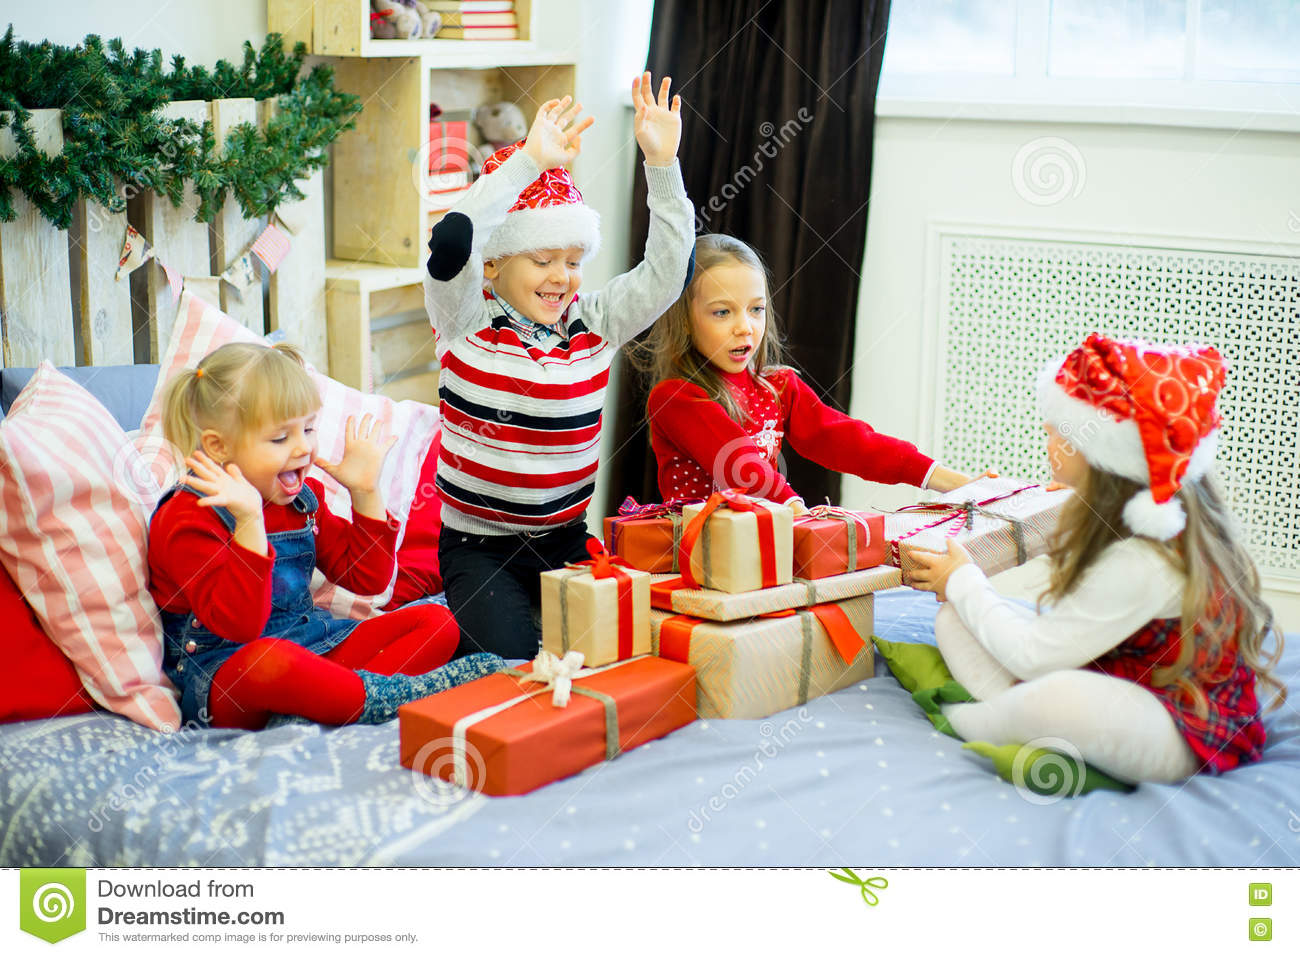 group of kids in red hat sitting on the bed next to the christmas tree holding gifts and smiling